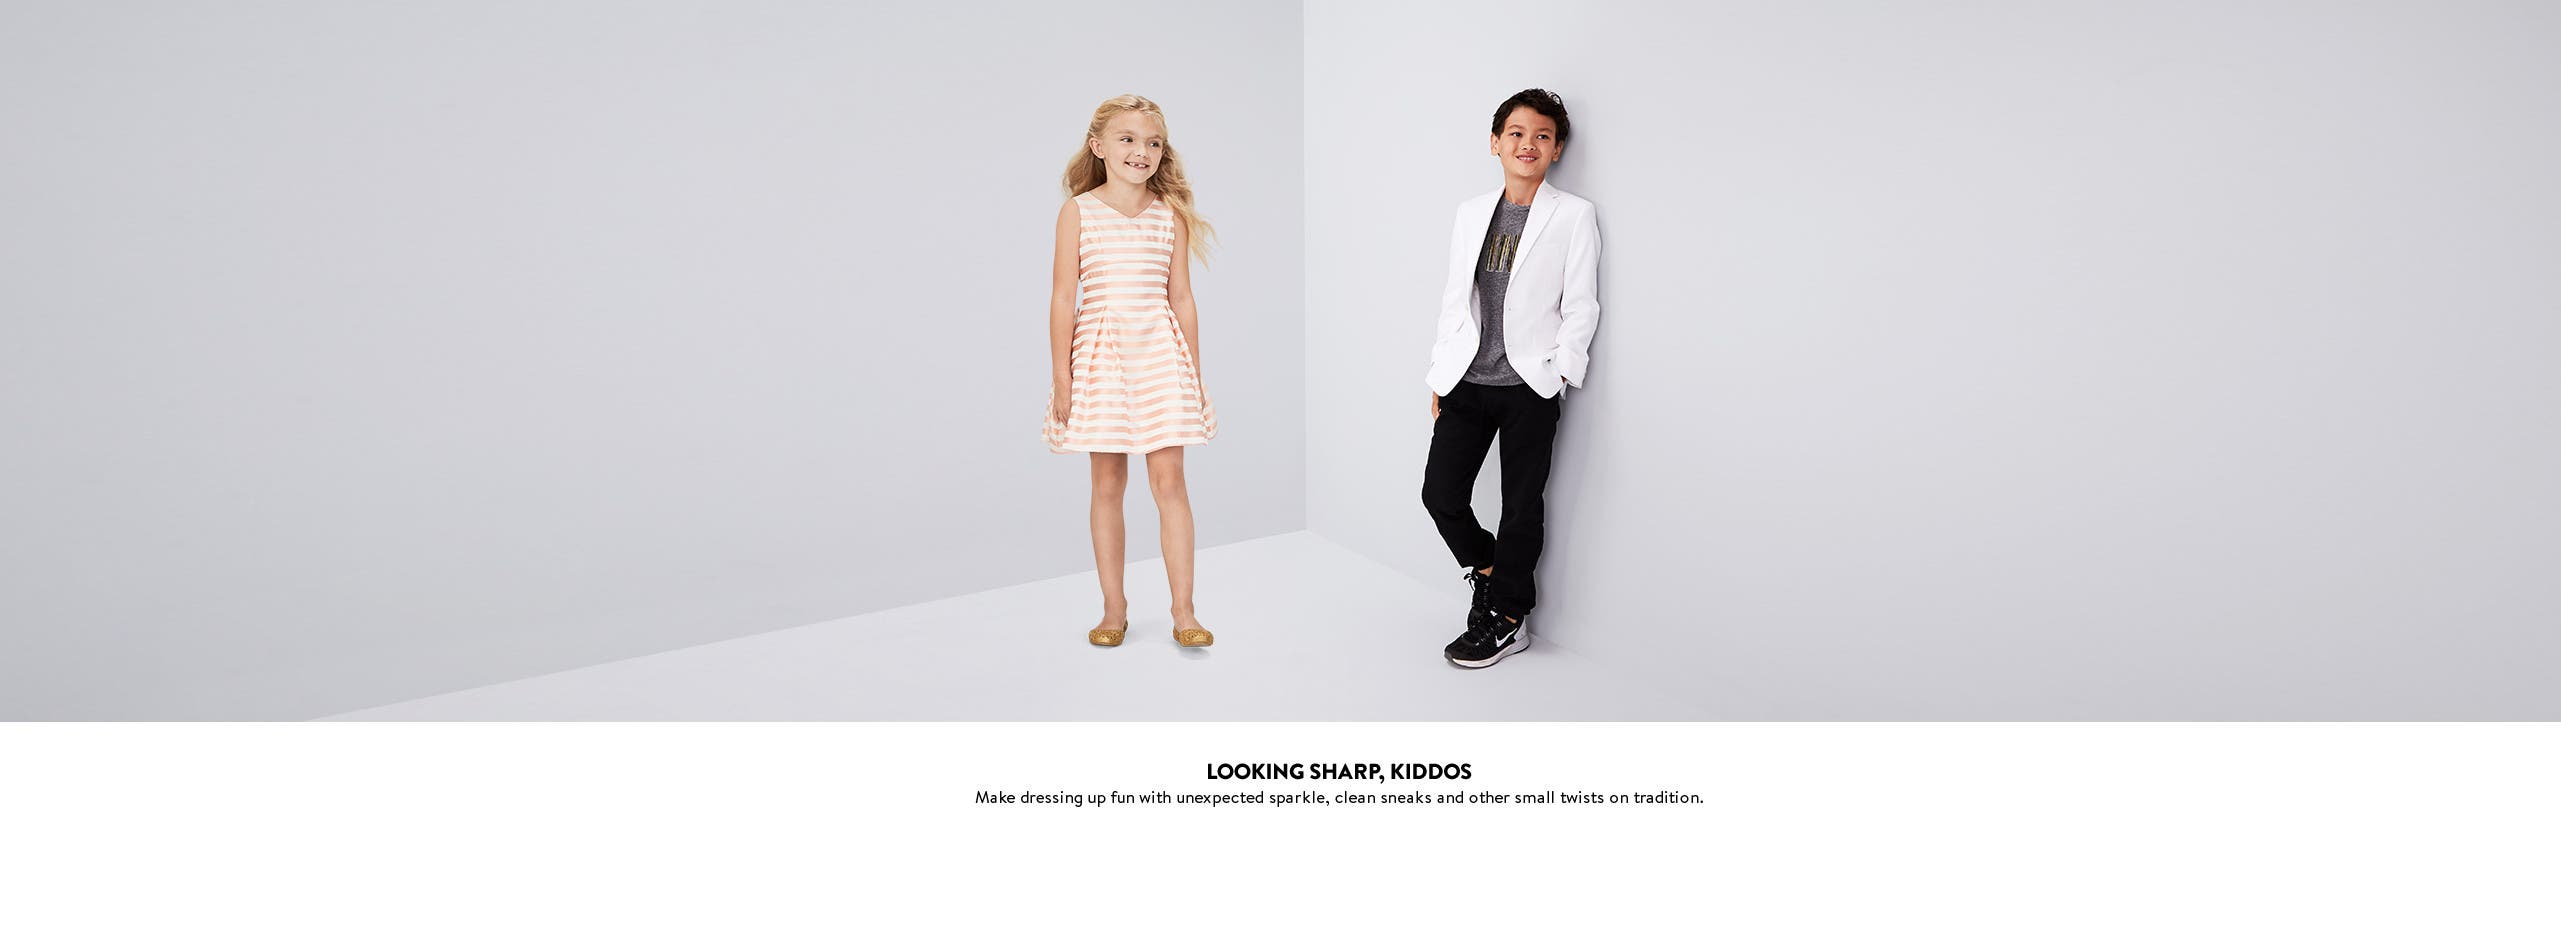 Looking sharp, kiddos. Make dressing up fun with some unexpected sparkle.